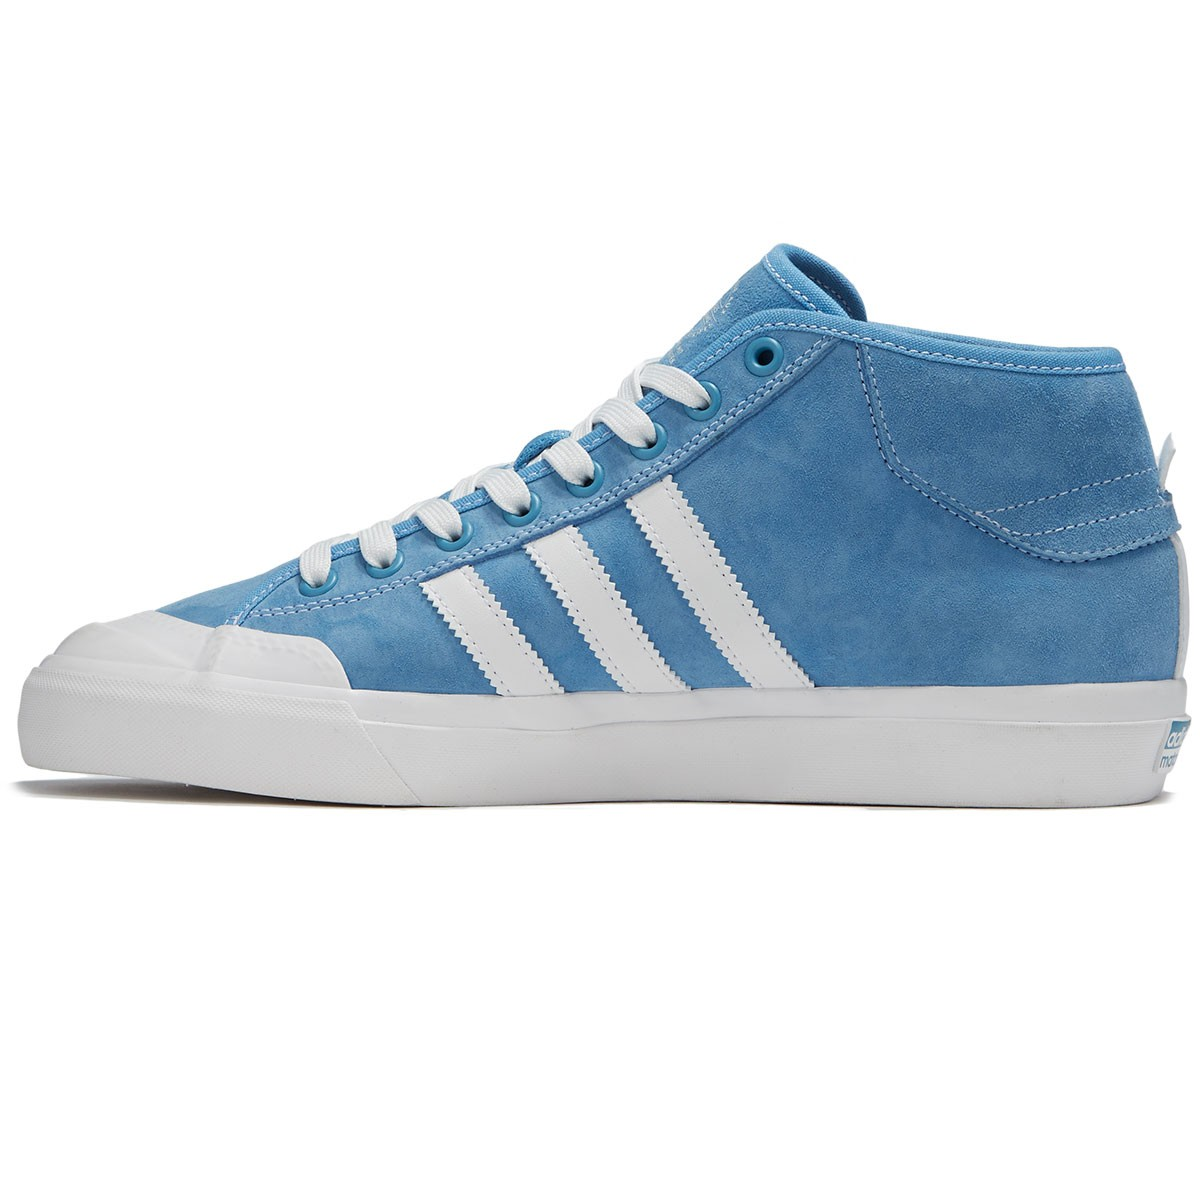 Adidas Matchcourt Mid Marc Johnson Shoes - Light Blue Neo White Gold  Metallic - 26c5c5306